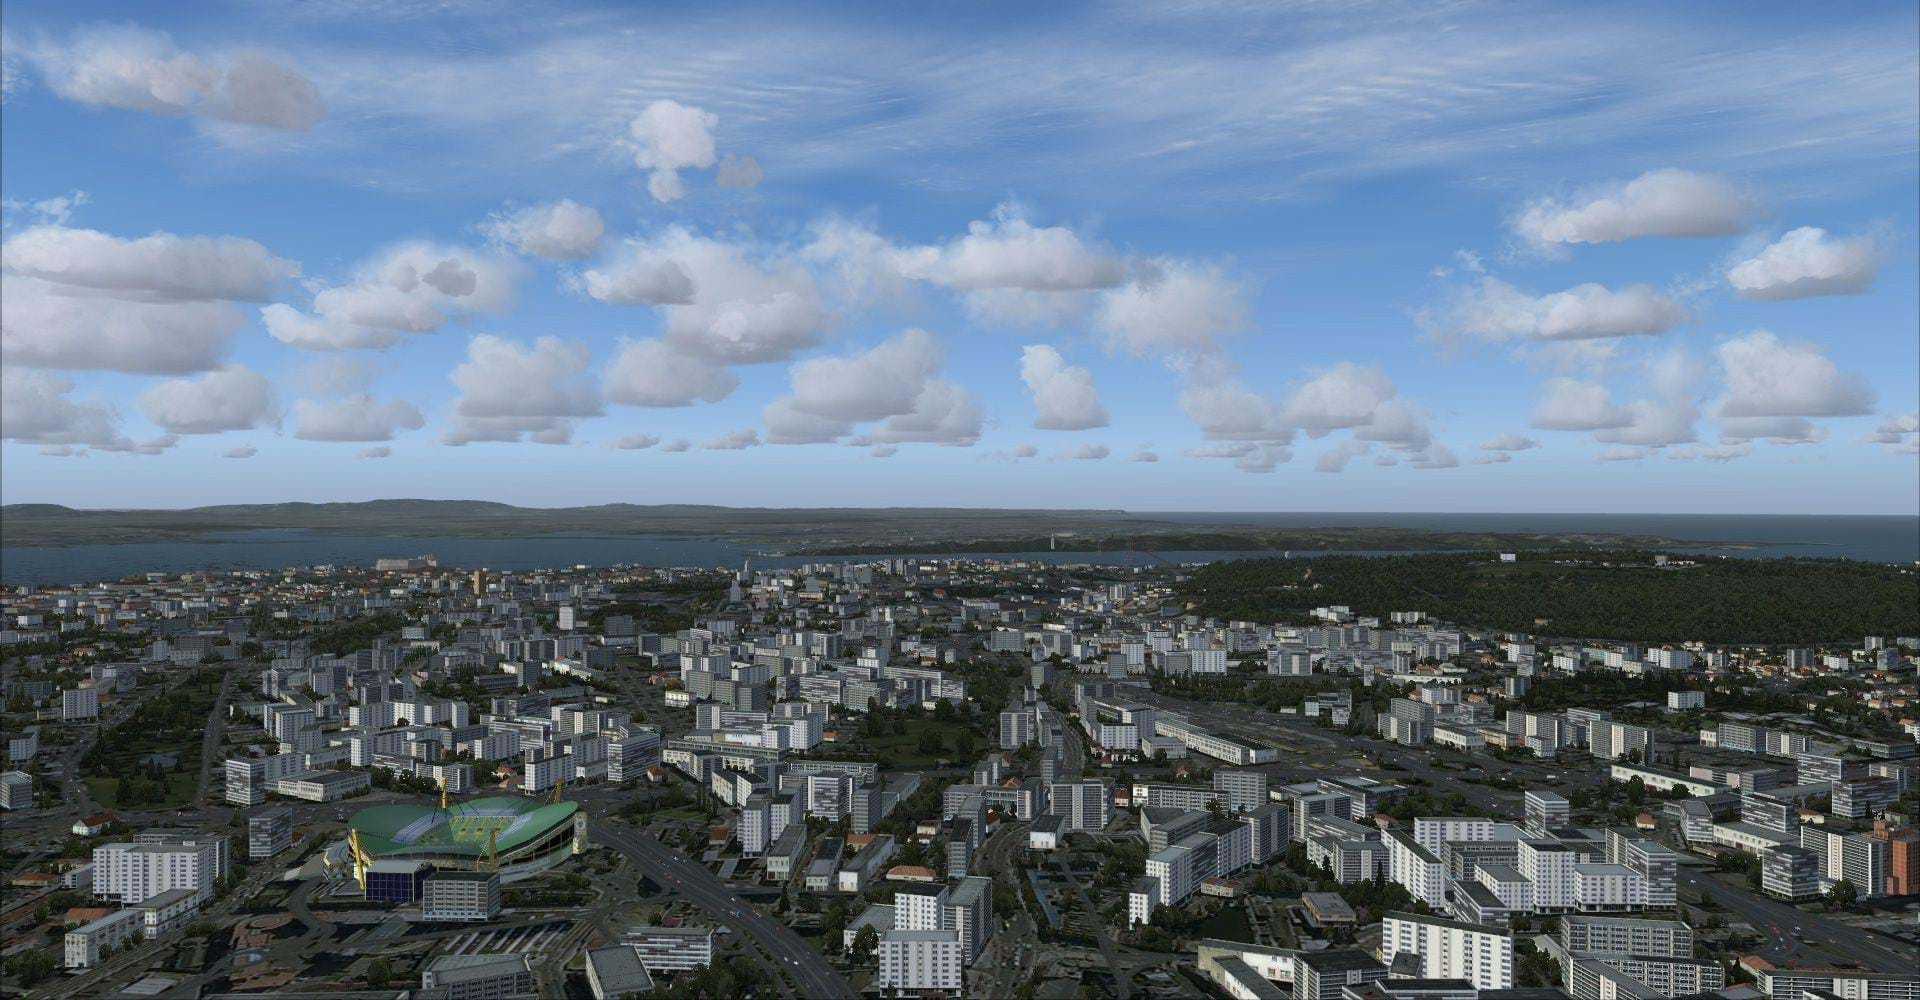 The ultimate FSX and P3D scenery: ORBX Global Vector and openLC